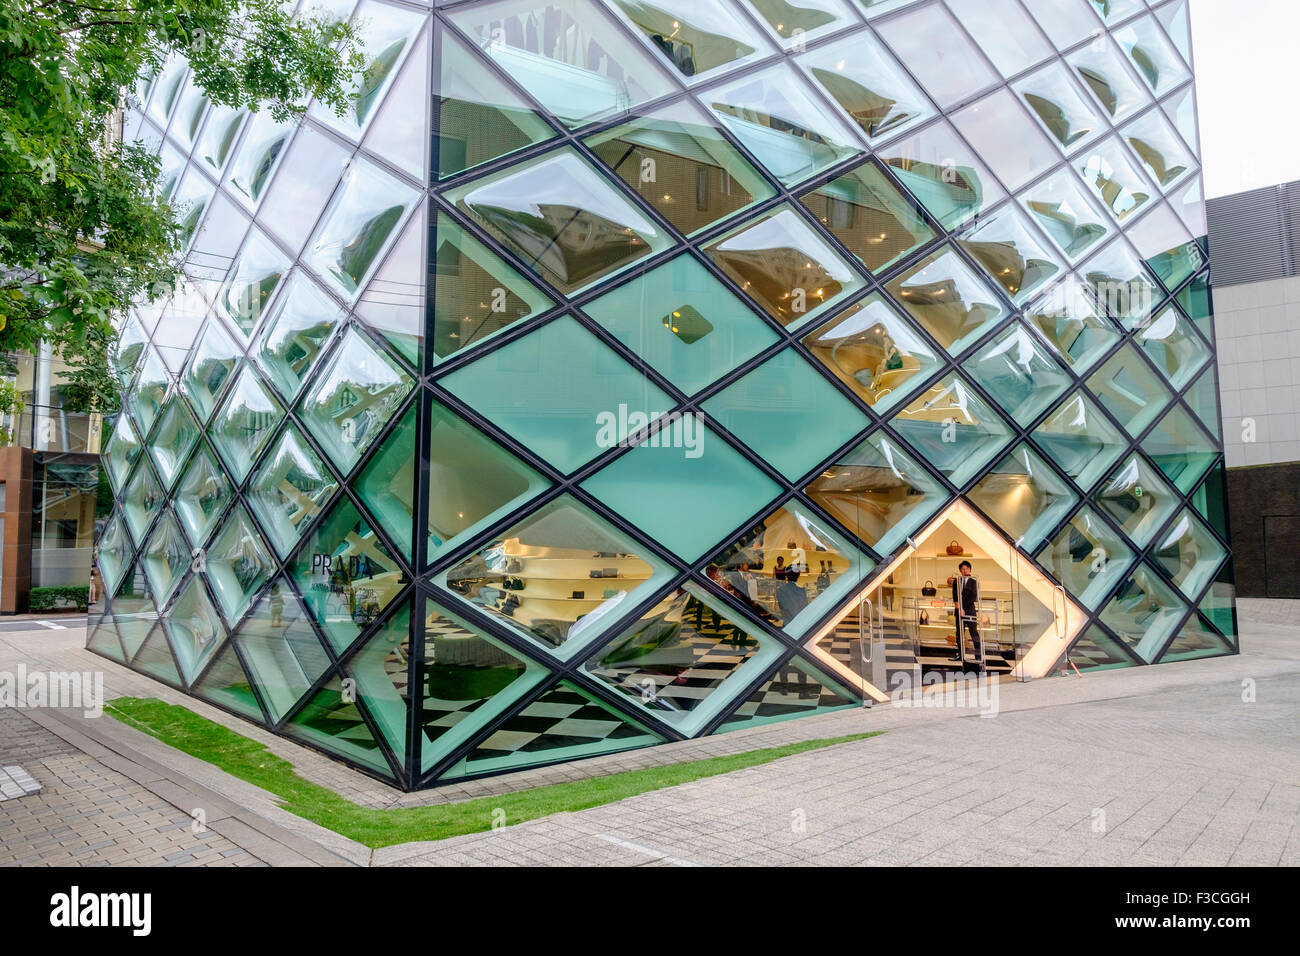 Exterior of glass walled Prada flagship store in Aoyama Tokyo Japan - Stock Image